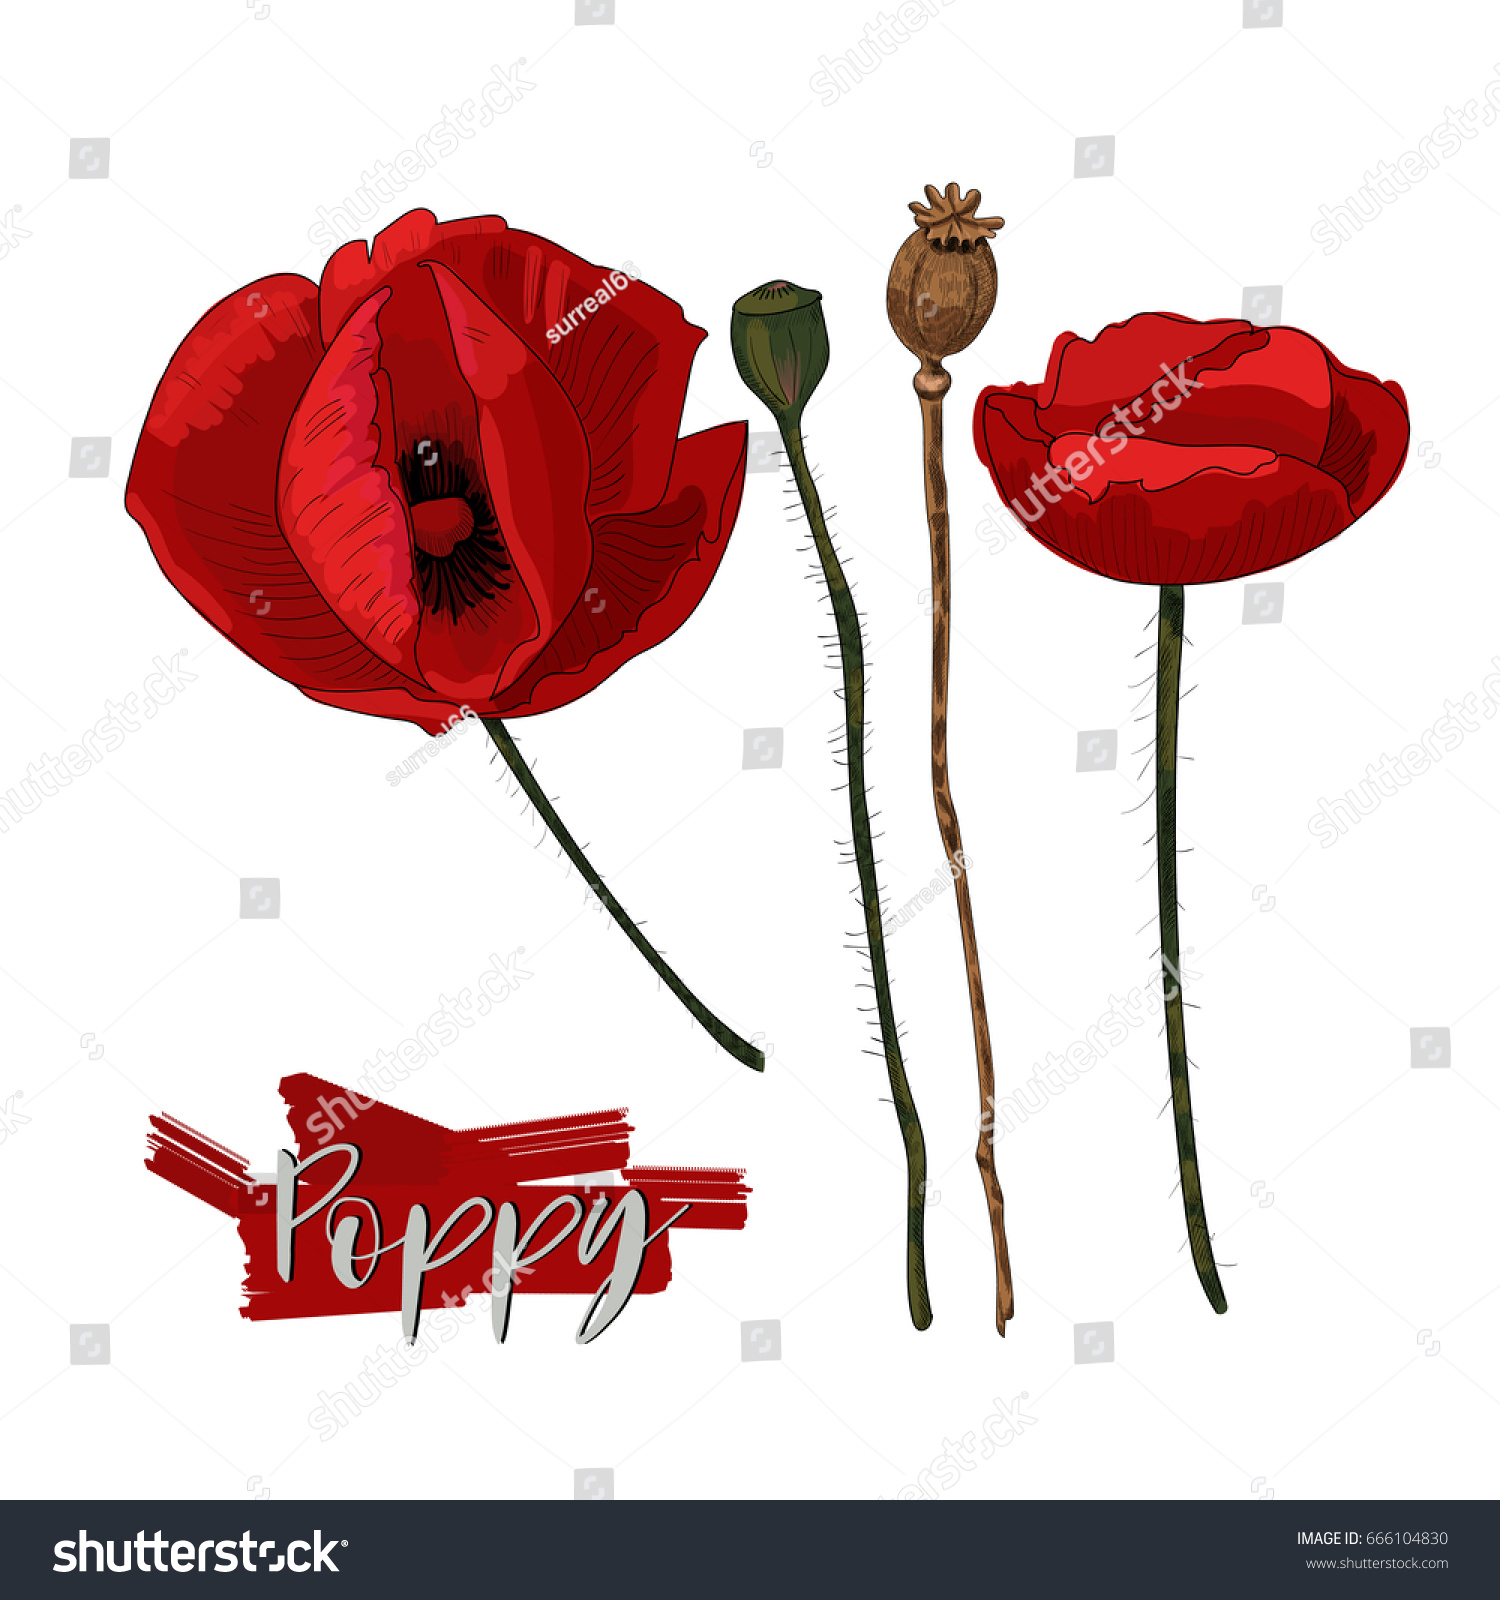 color poppy flowers and seed head isolated on white background poppy flowers heads and